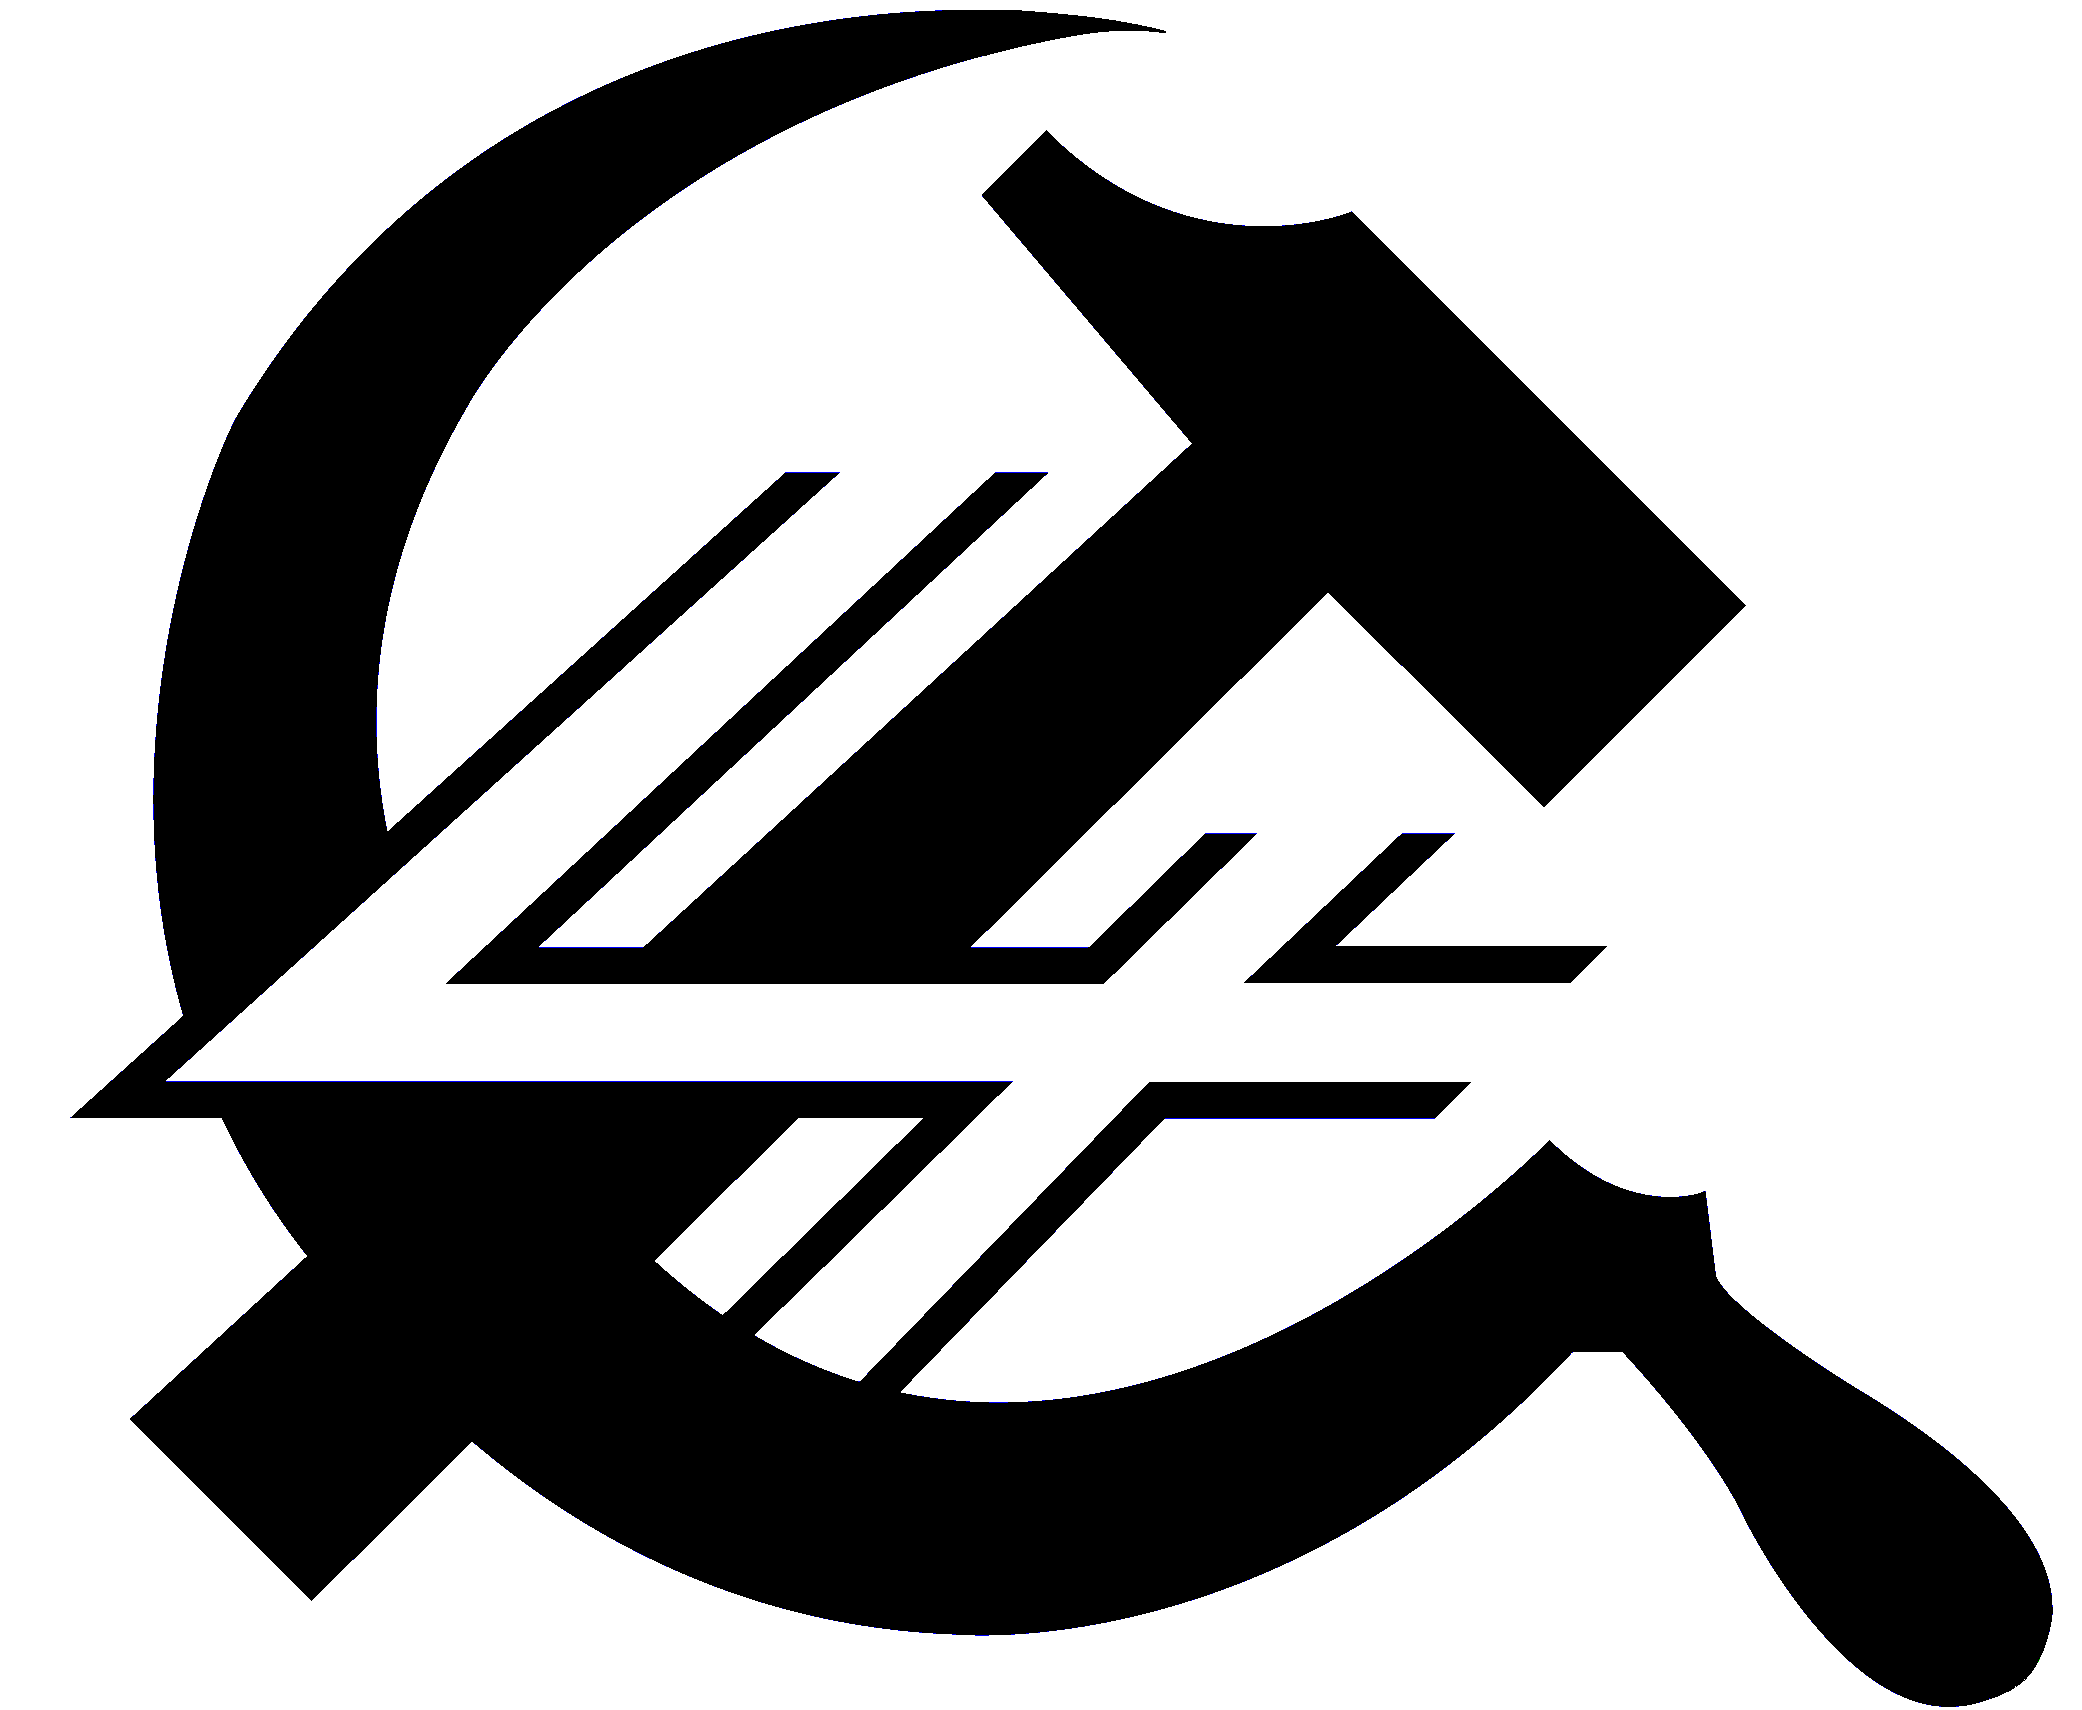 Open letter to the Trotskyist Fraction